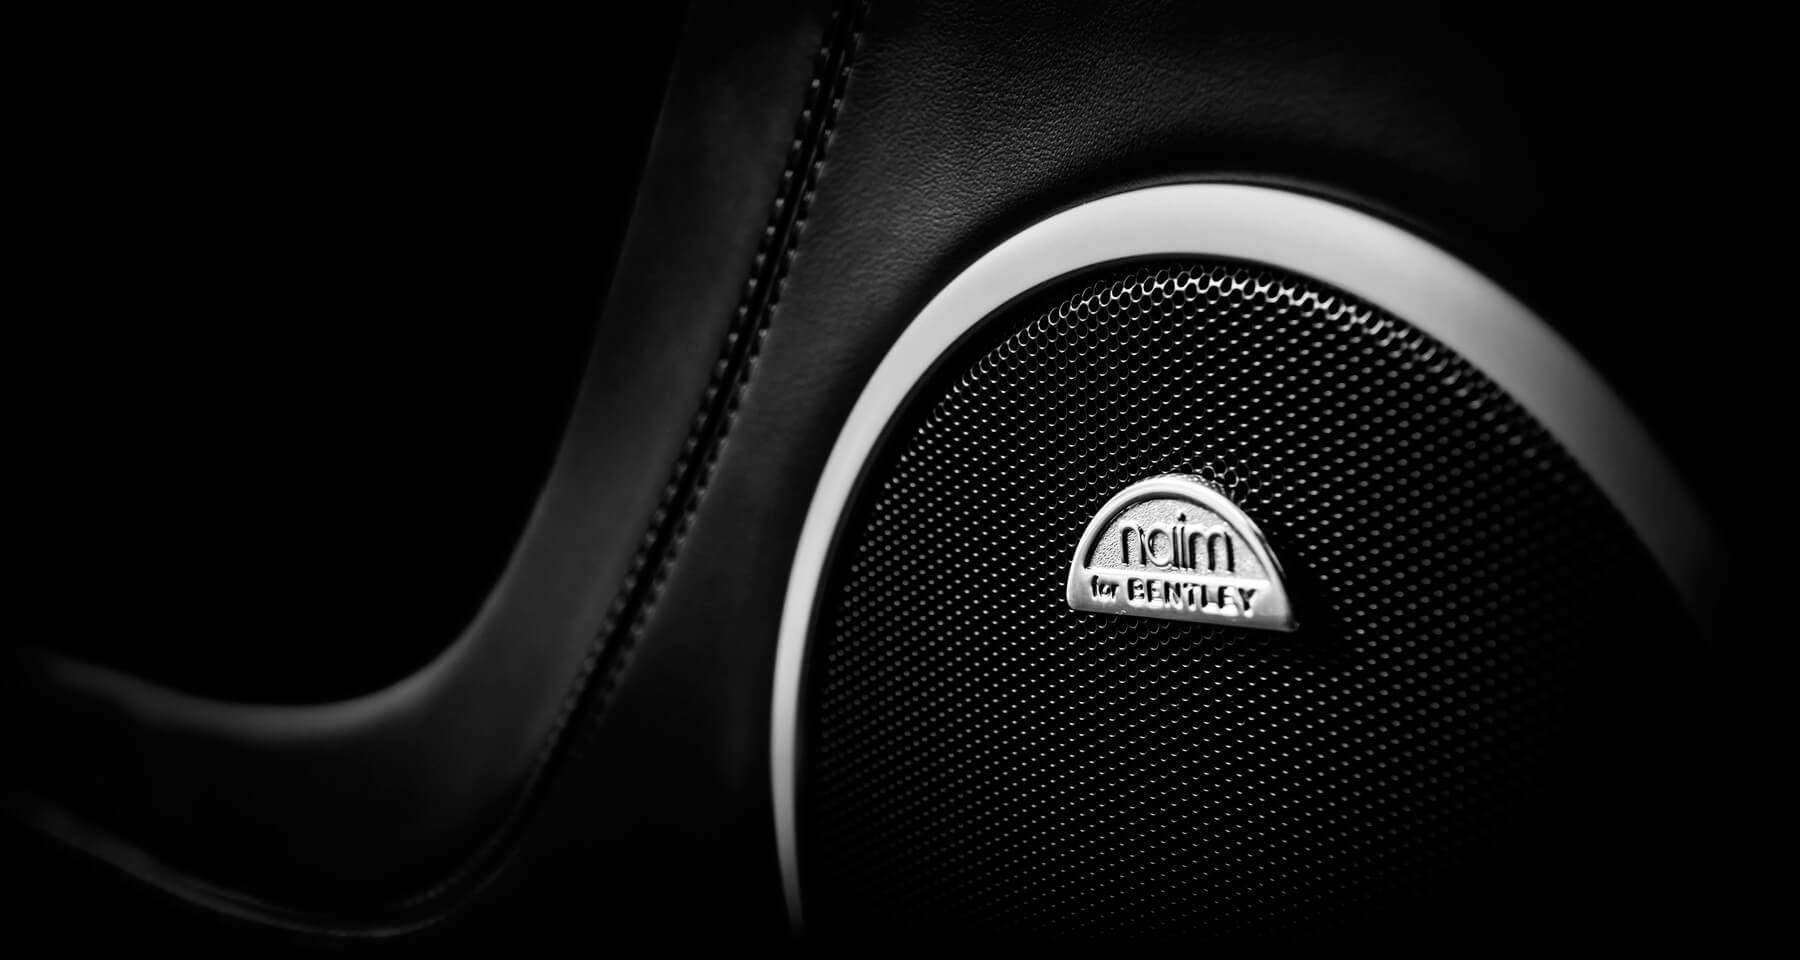 Naim Audio's custom-built car audio system for Bentley Motorcars.